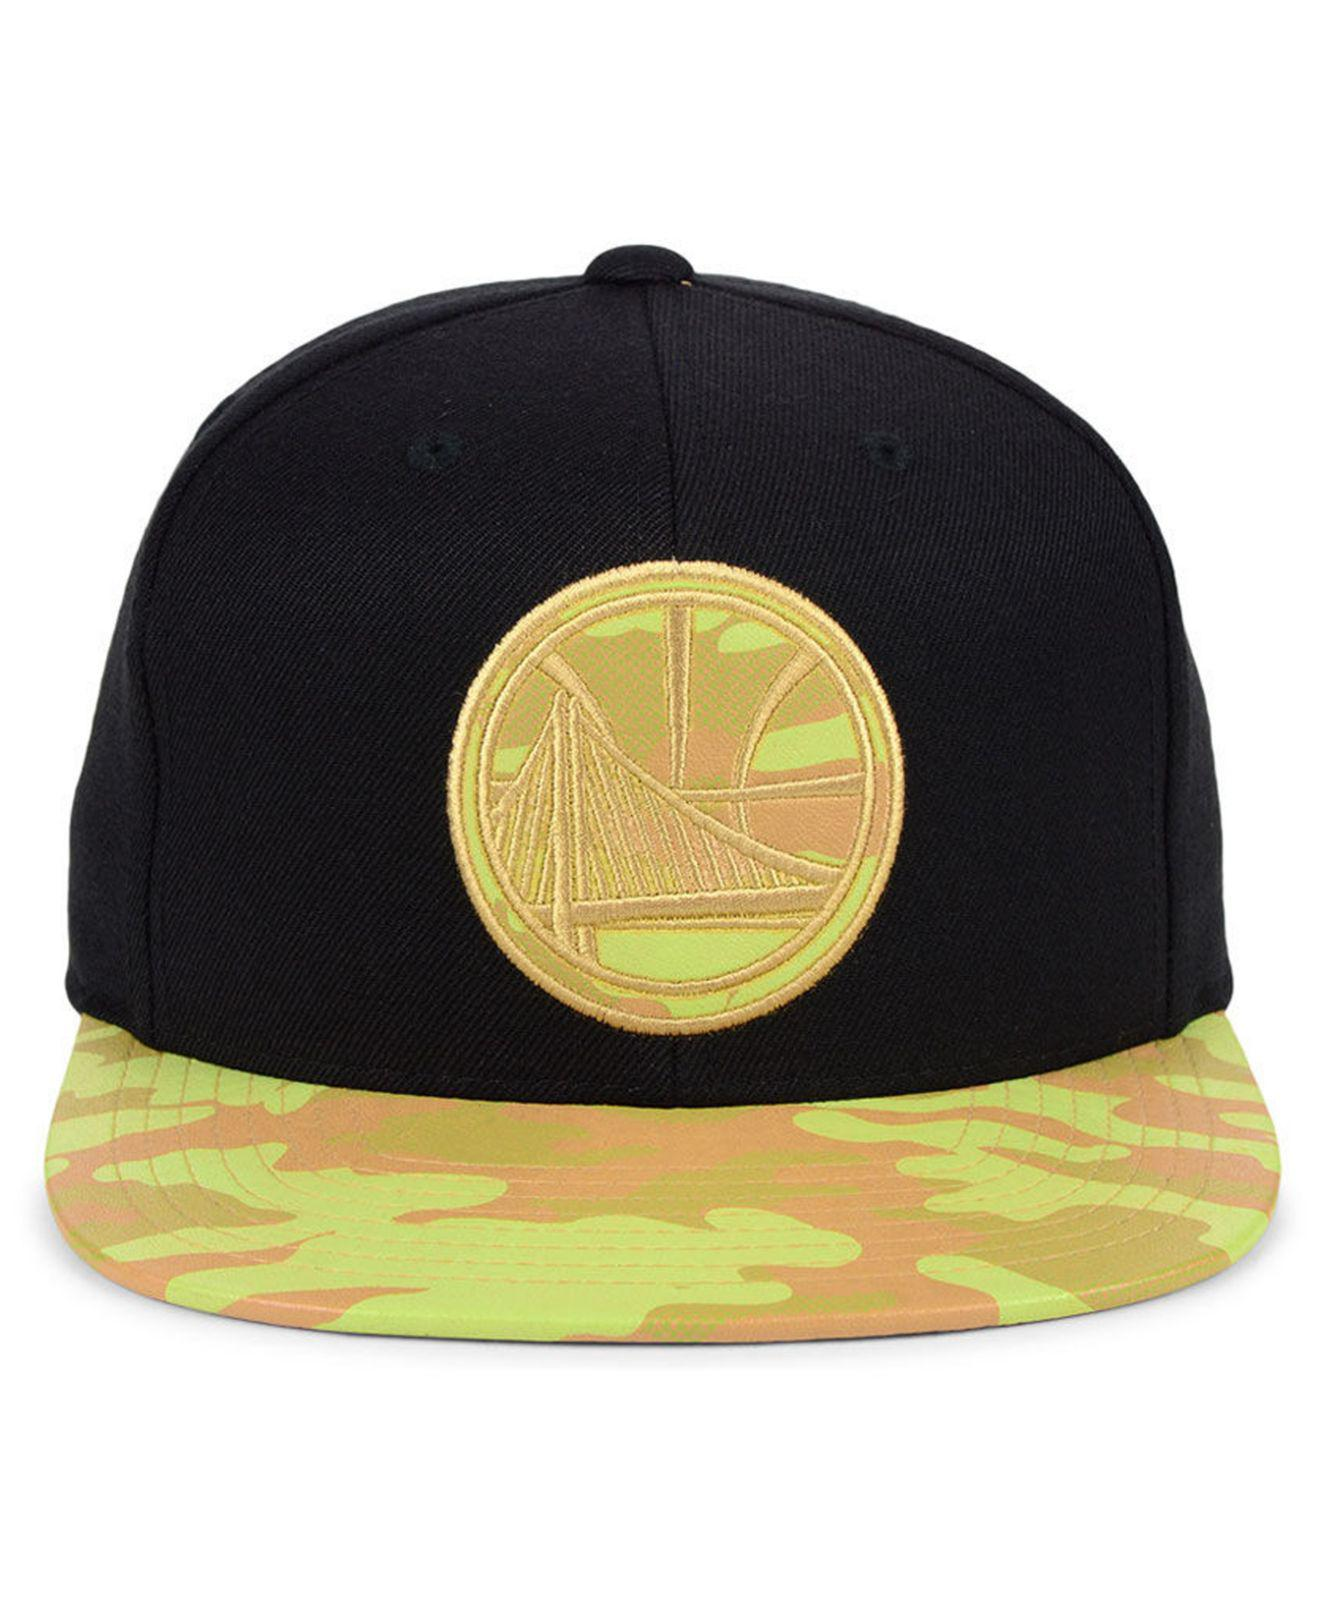 promo code 2790e 08825 Mitchell   Ness Golden State Warriors Natural Camo Snapback Cap in Black  for Men - Save 52% - Lyst